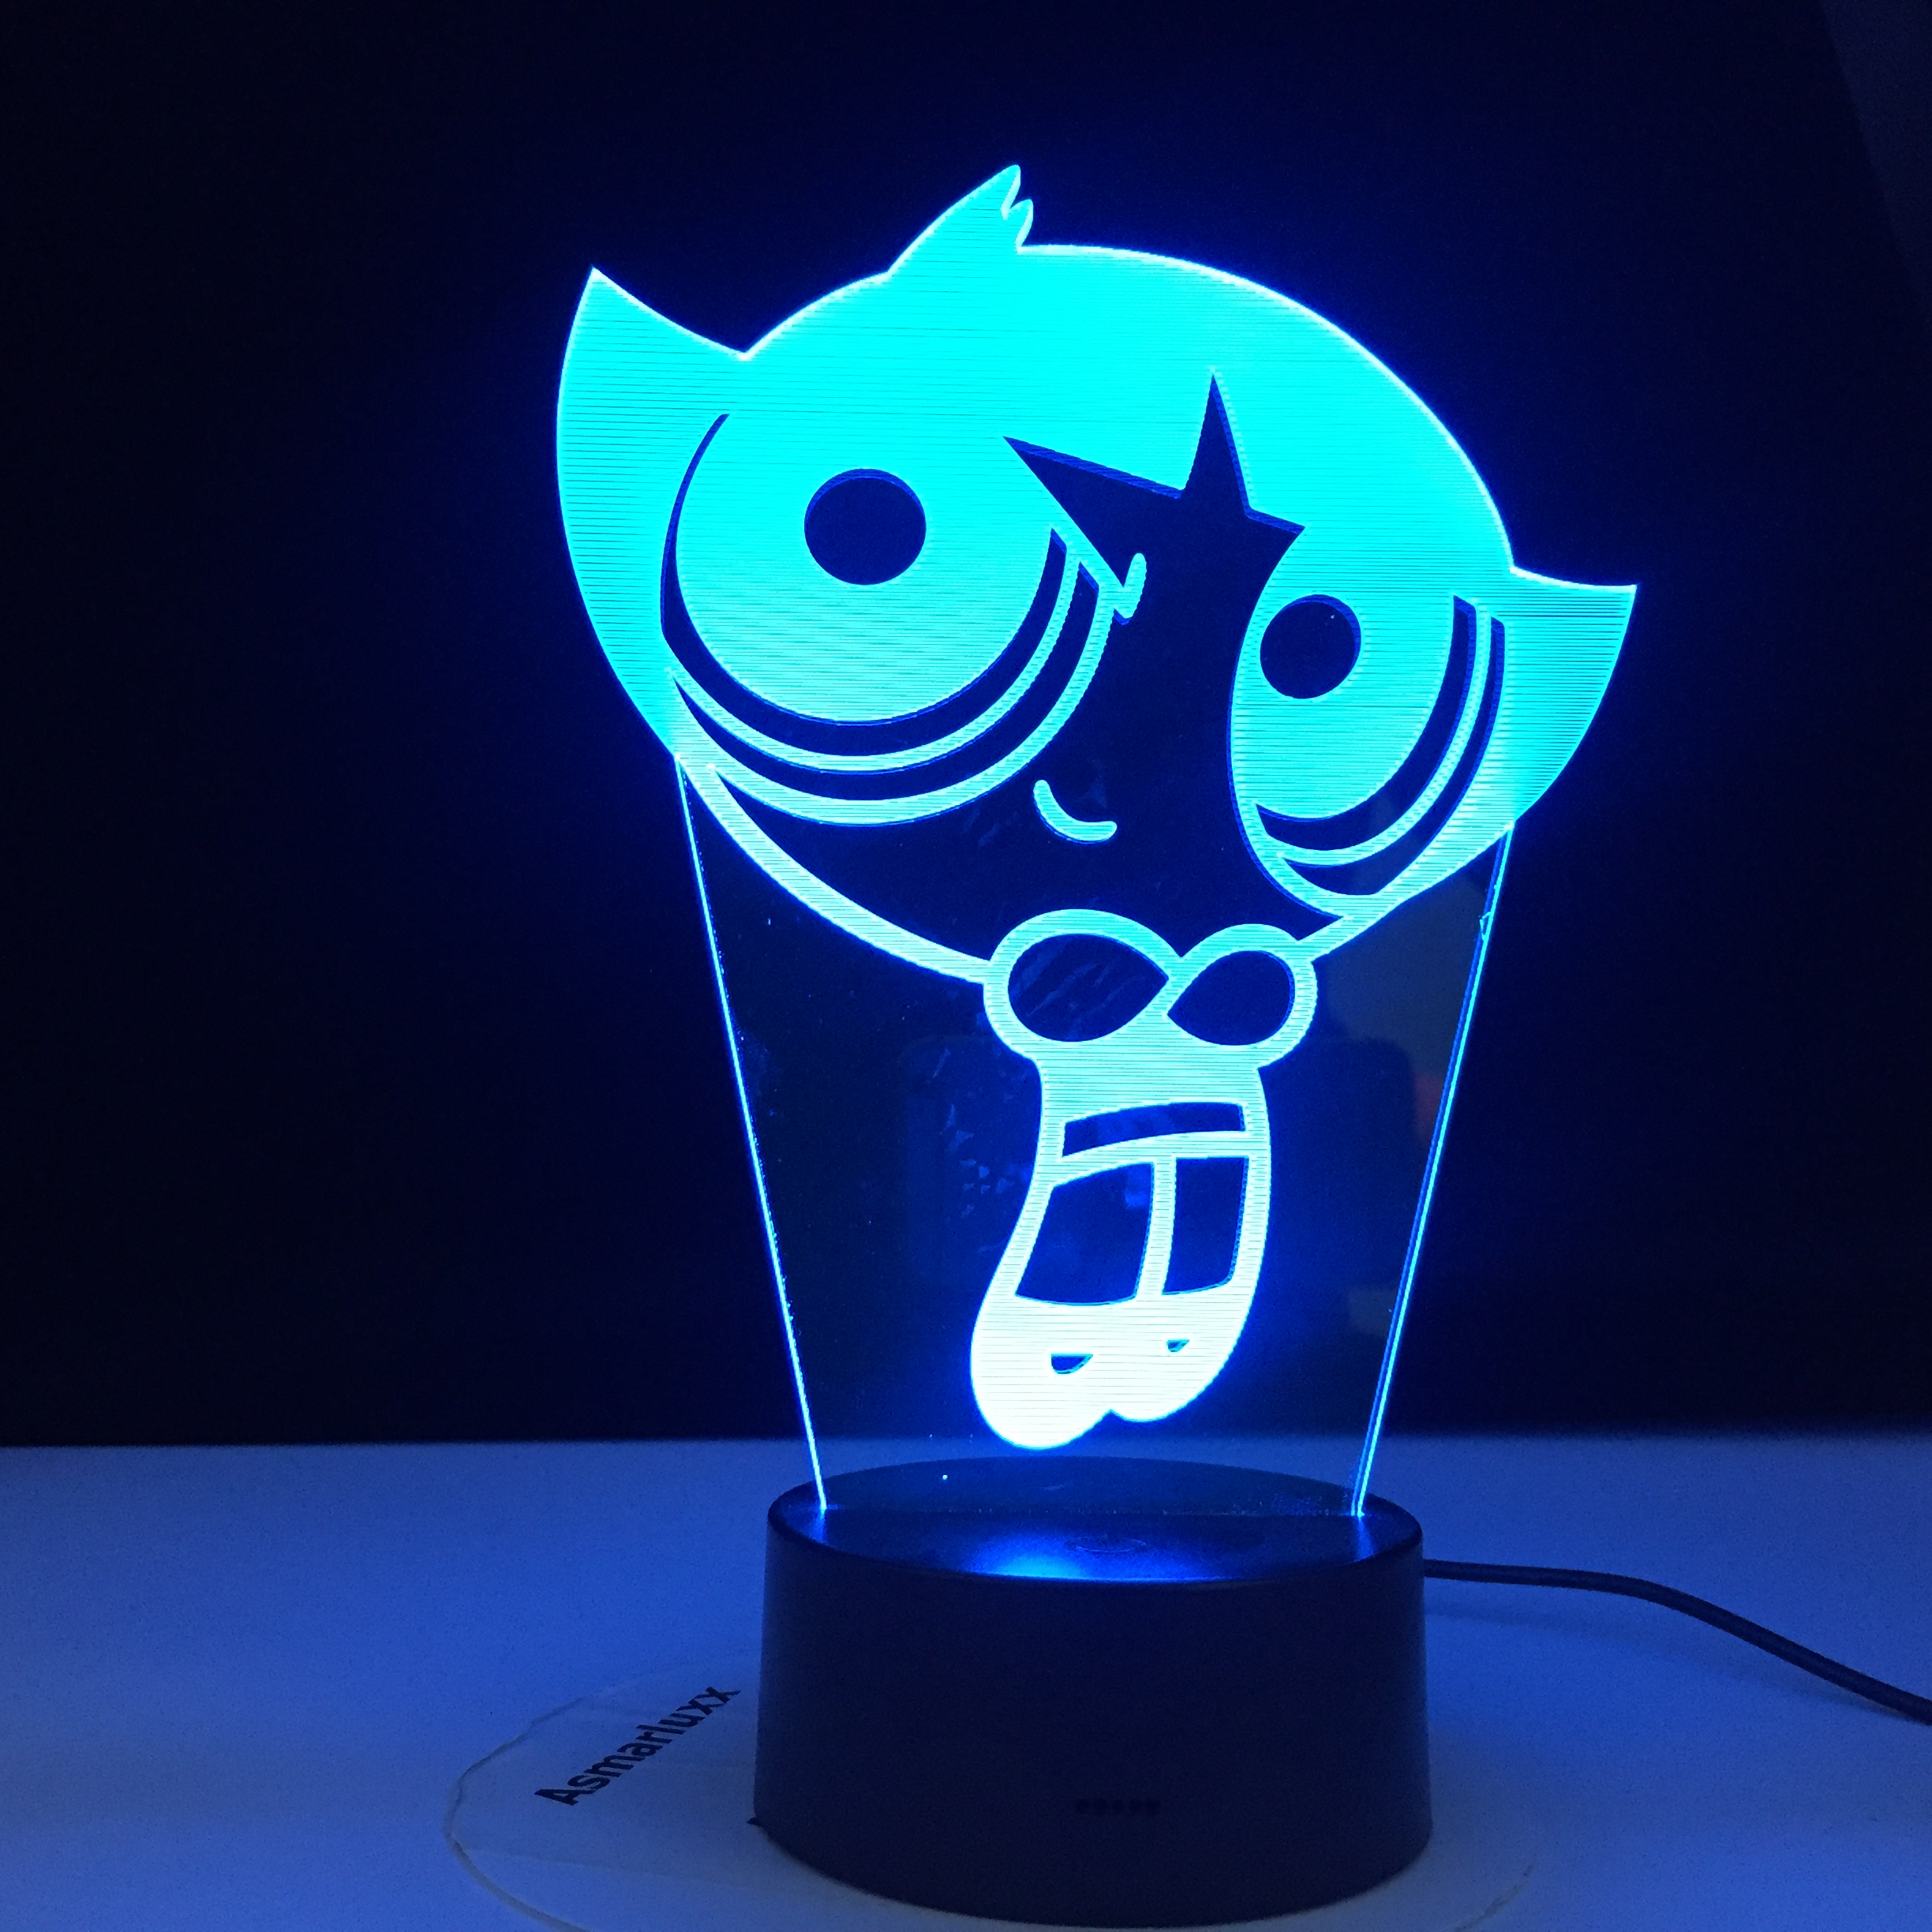 Powerpuff Girls Buttercup Figure Nightlight For Girl Bedroom Decorative USB Battery Powered Night Lamp Baby Night Light Gift